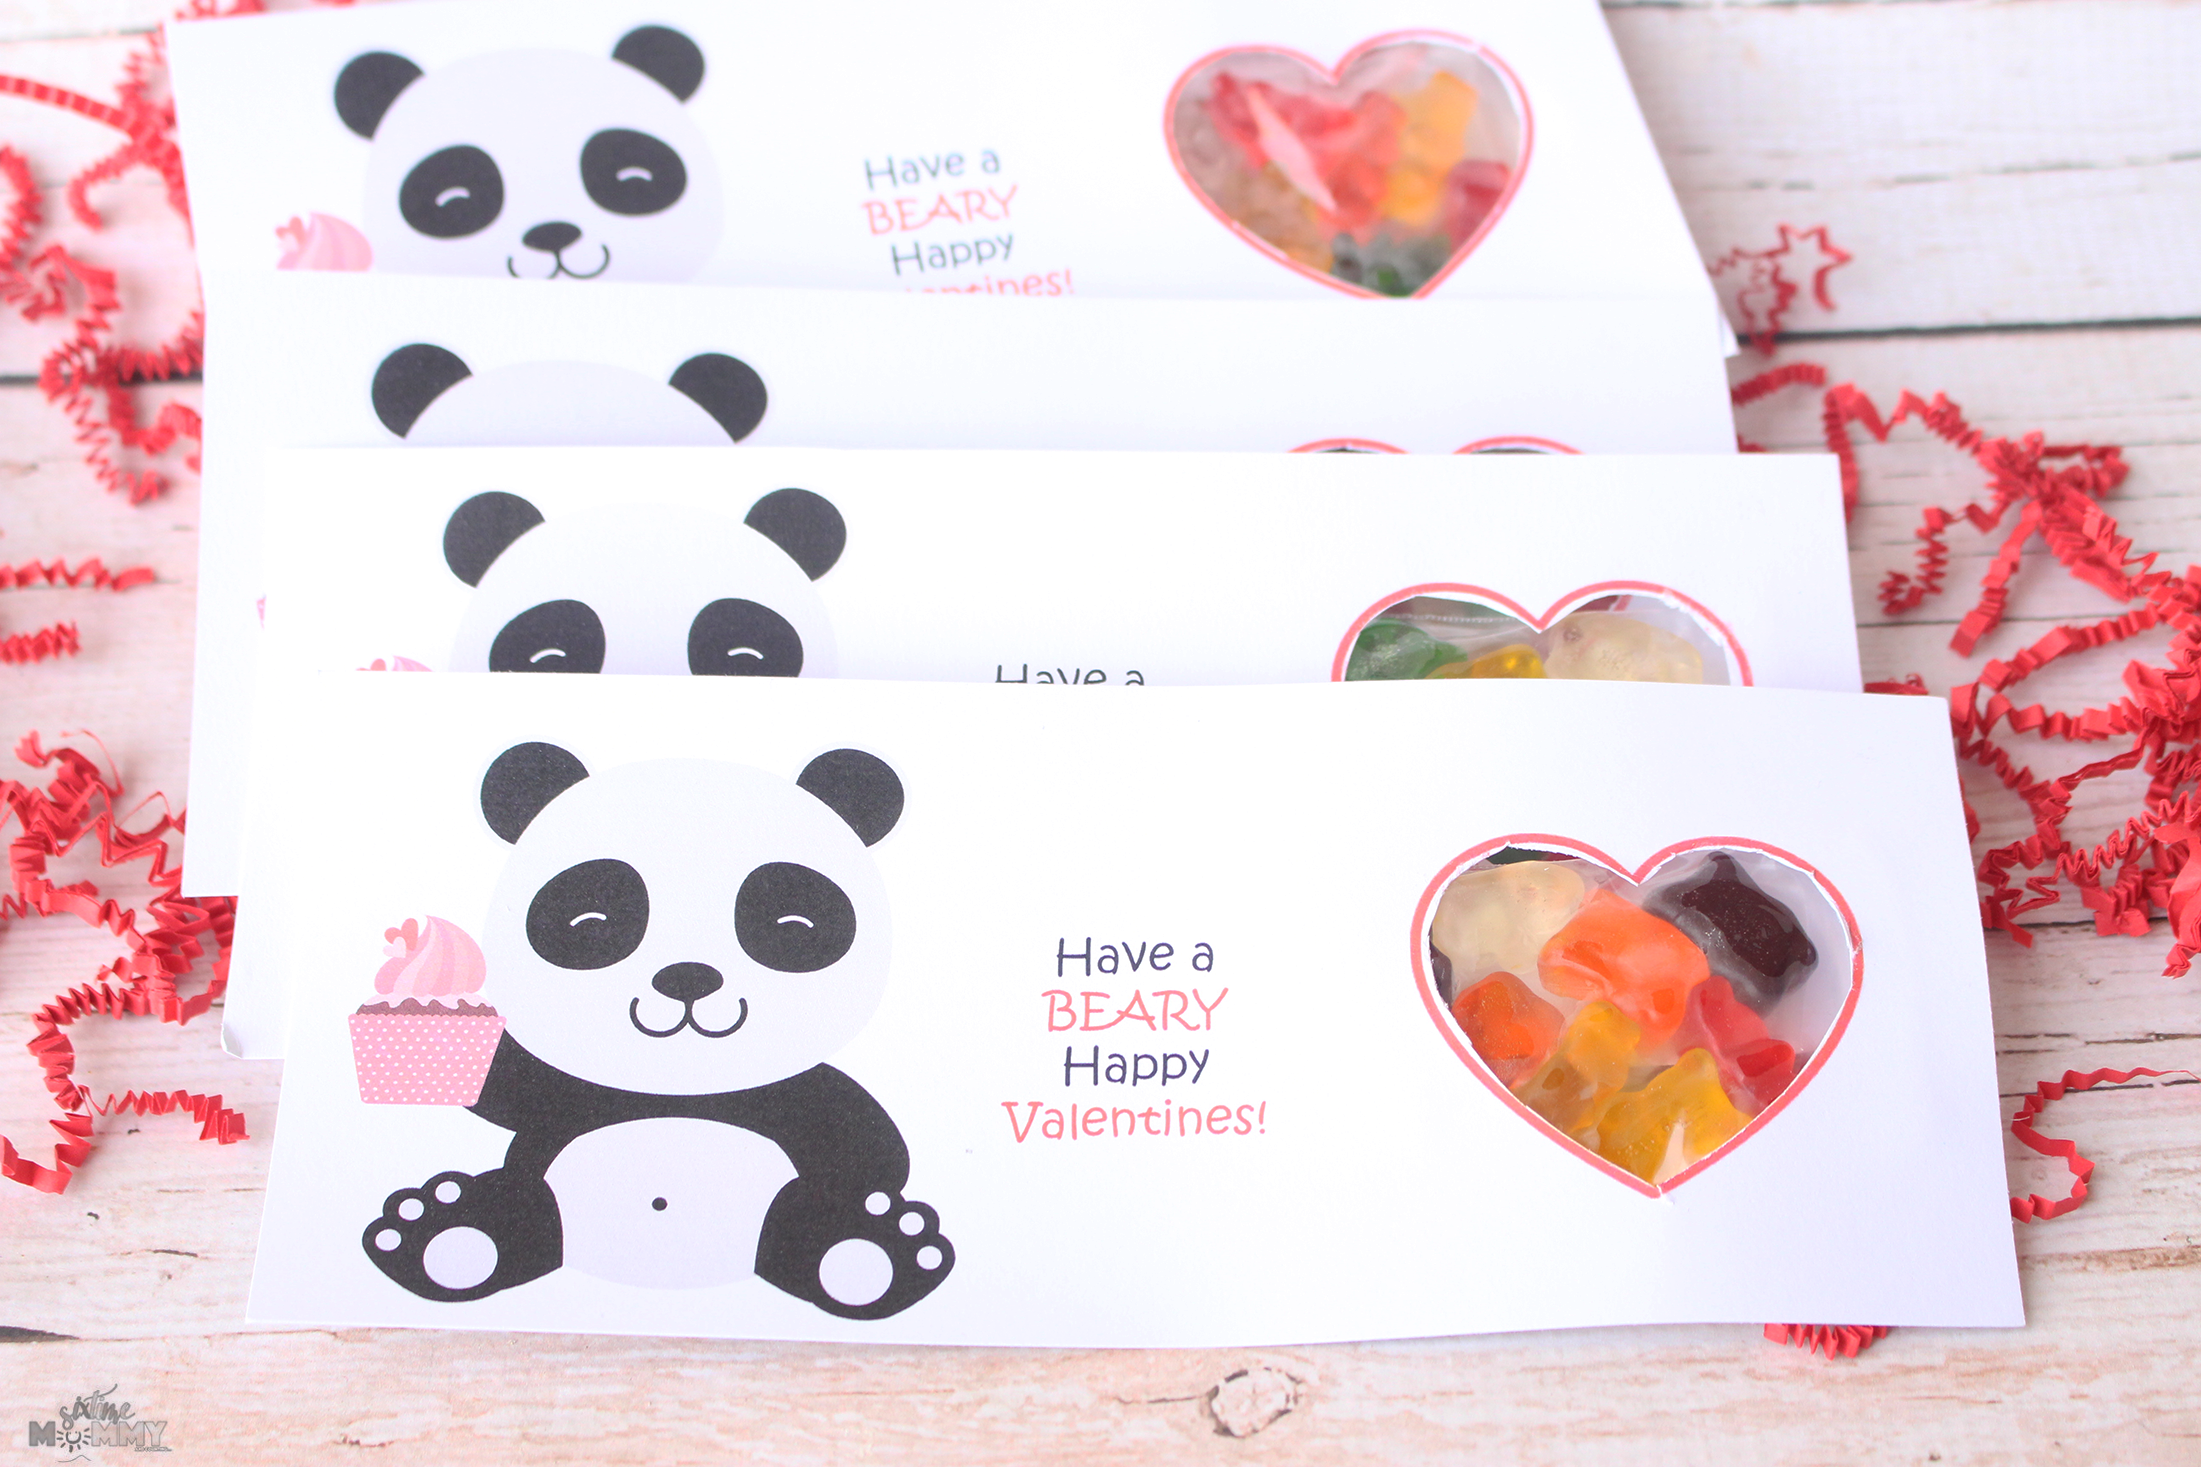 Sweet Treat: DIY Valentine's Gummy Bear Treats With FREE Printable